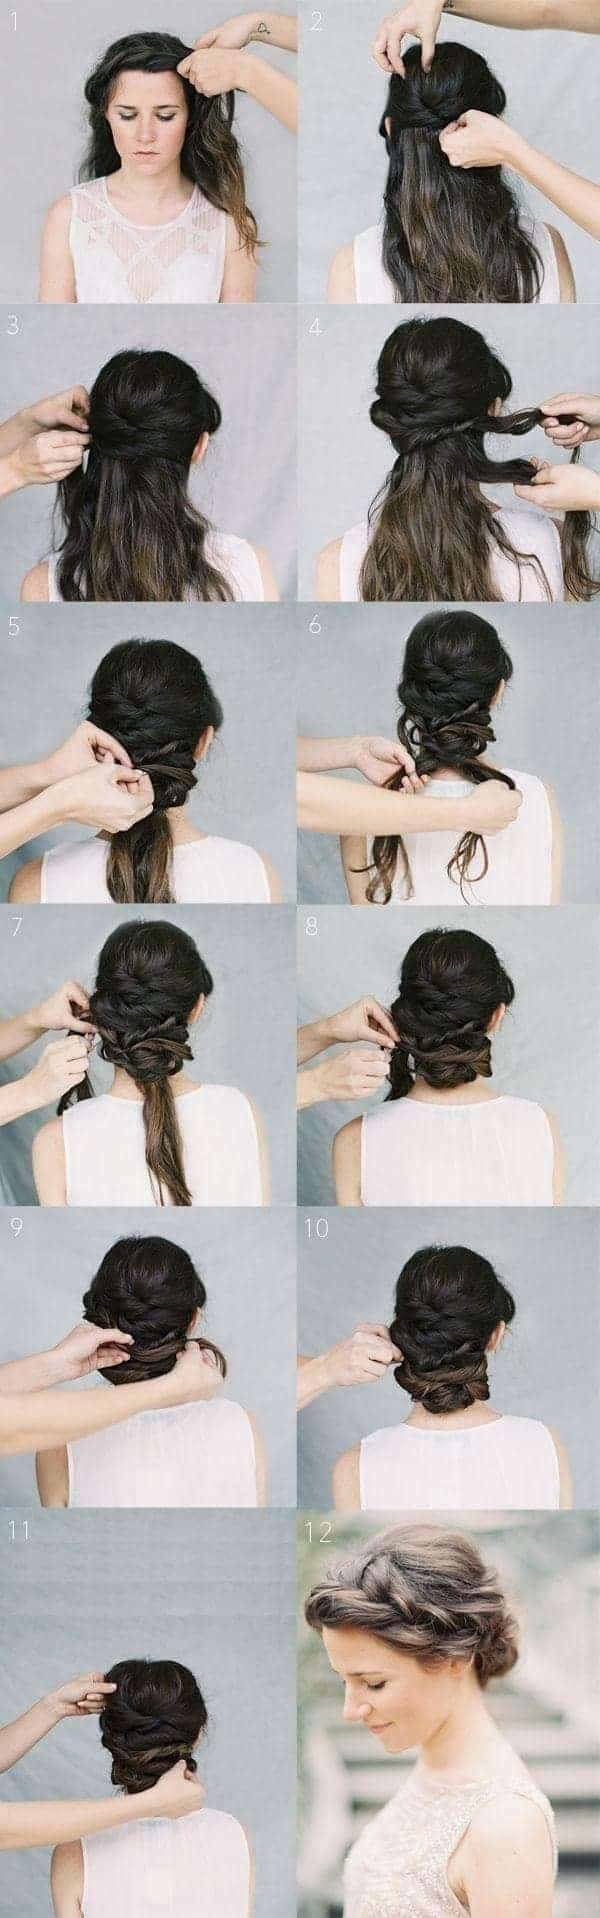 Micro braid hairstyles for long hair